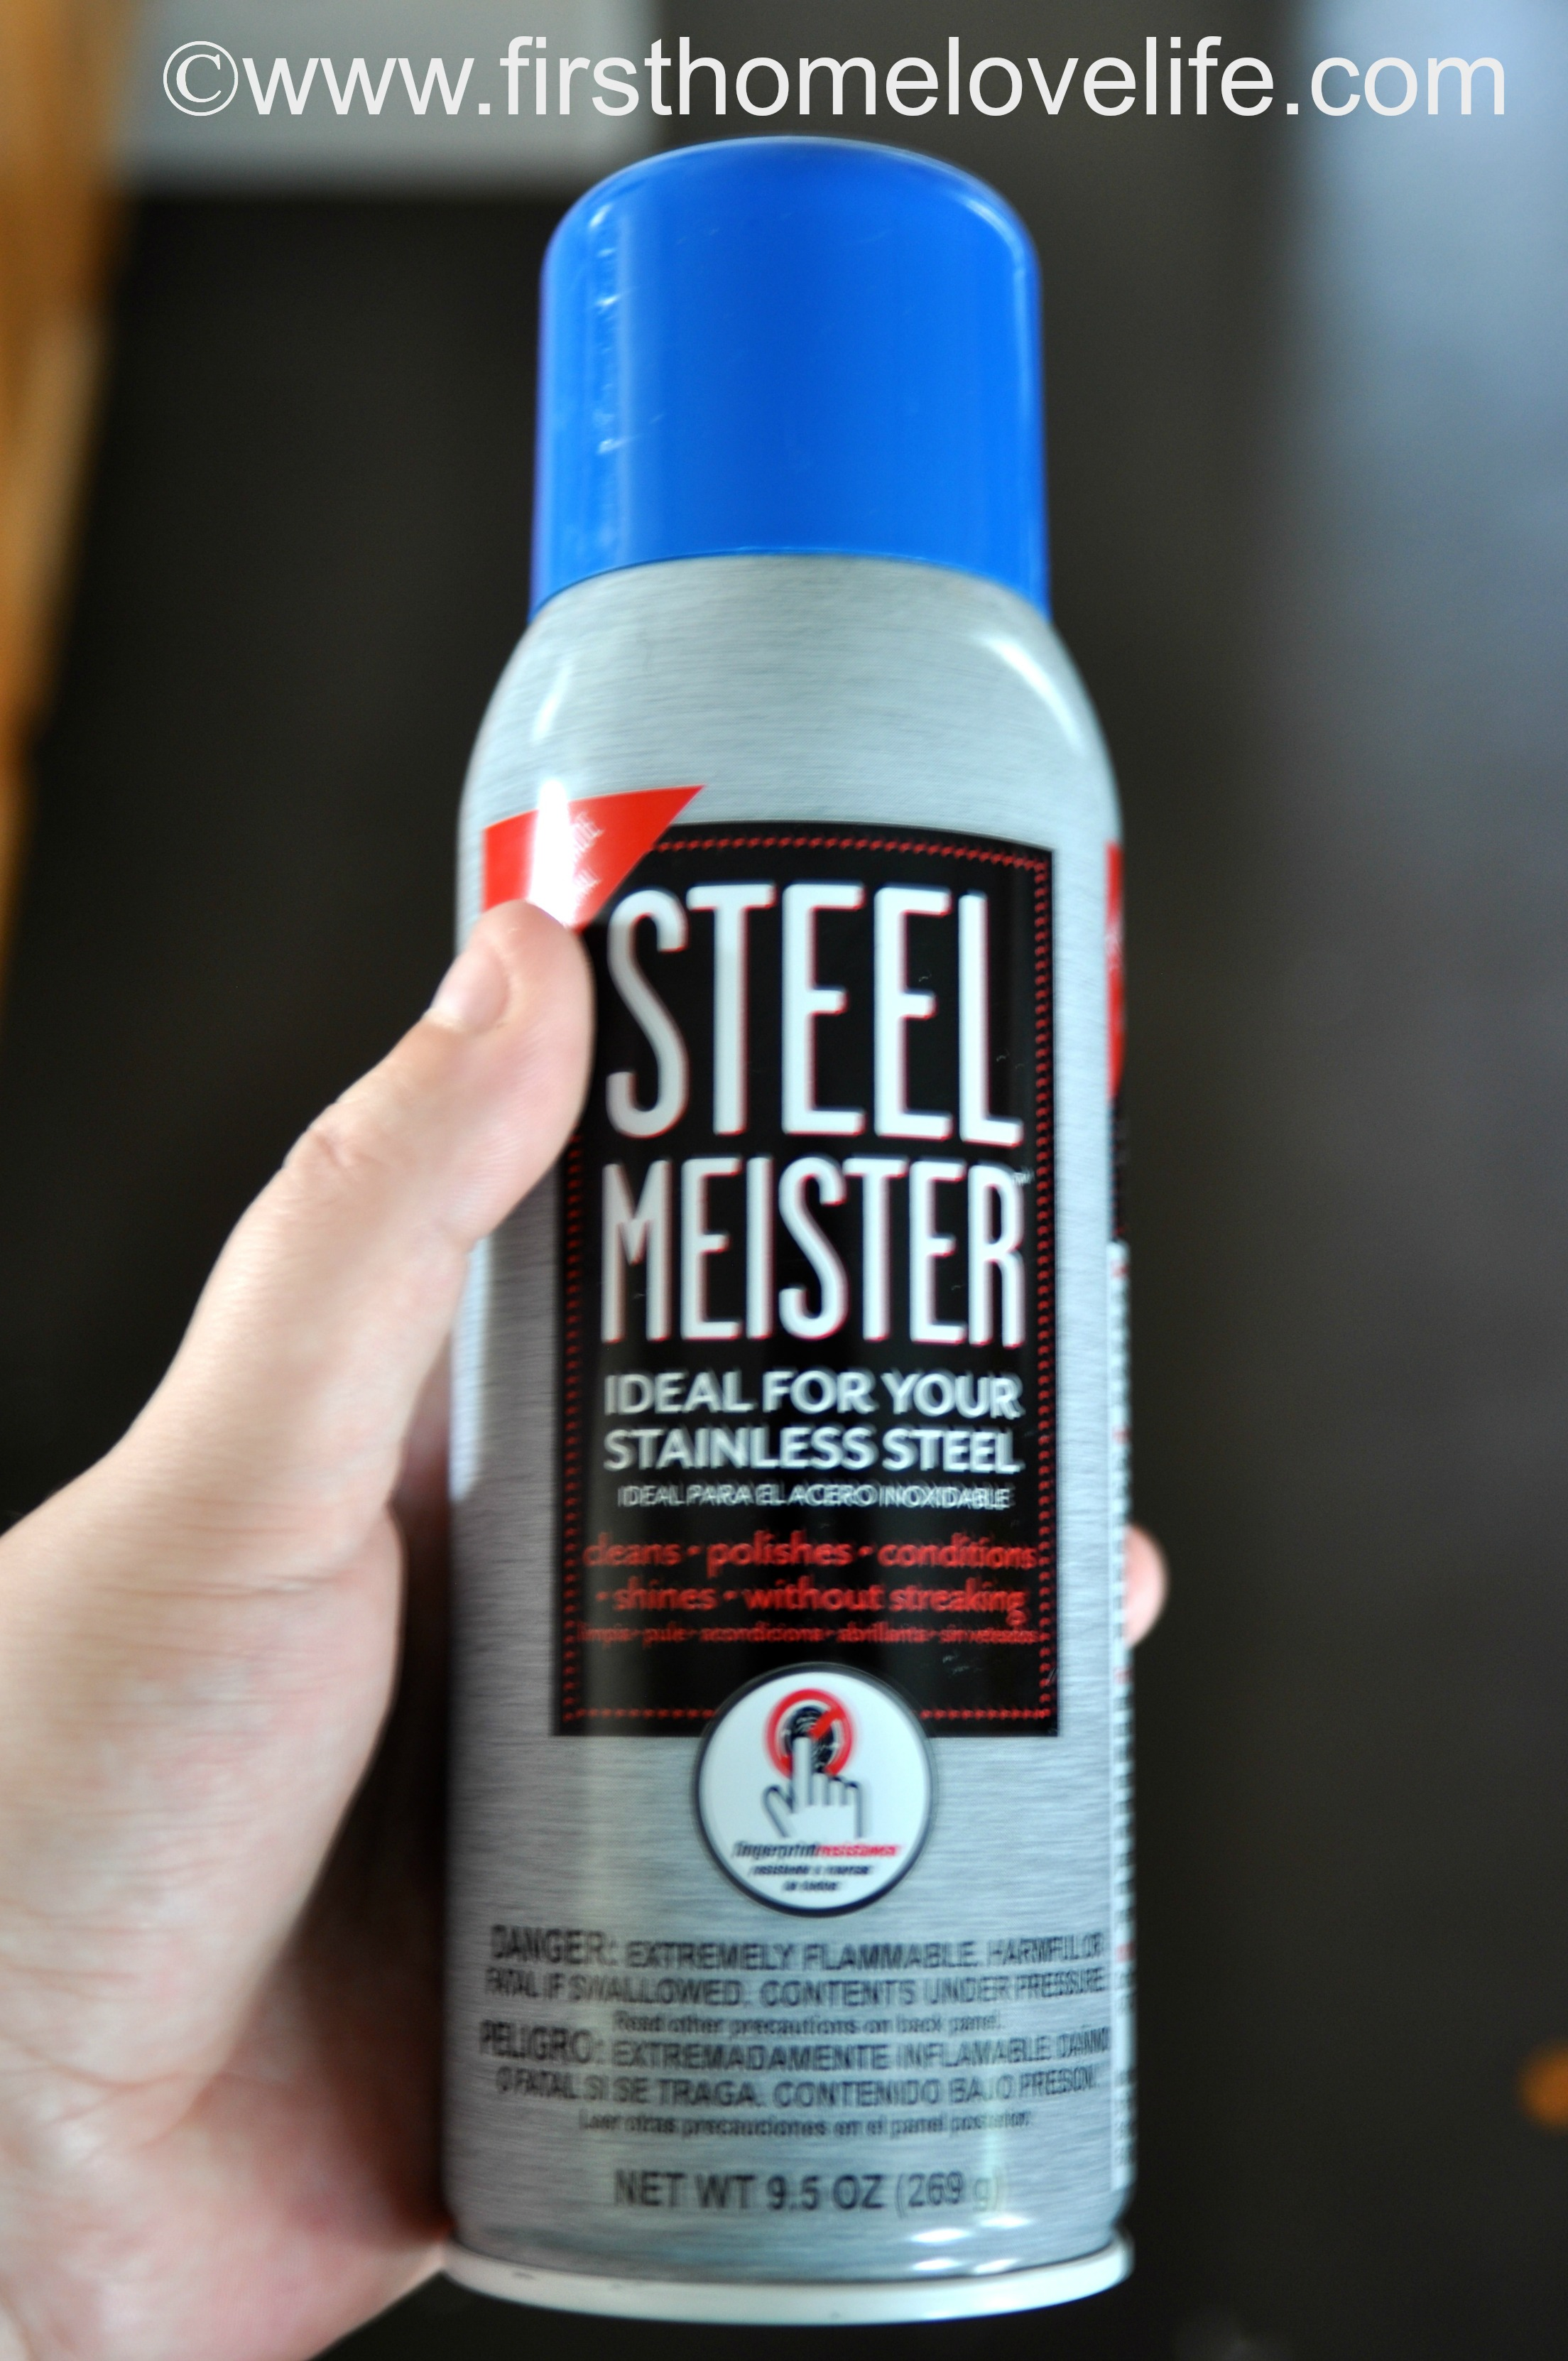 Home Office Spaces How To Clean Stainless Steel Steel Meister First Home